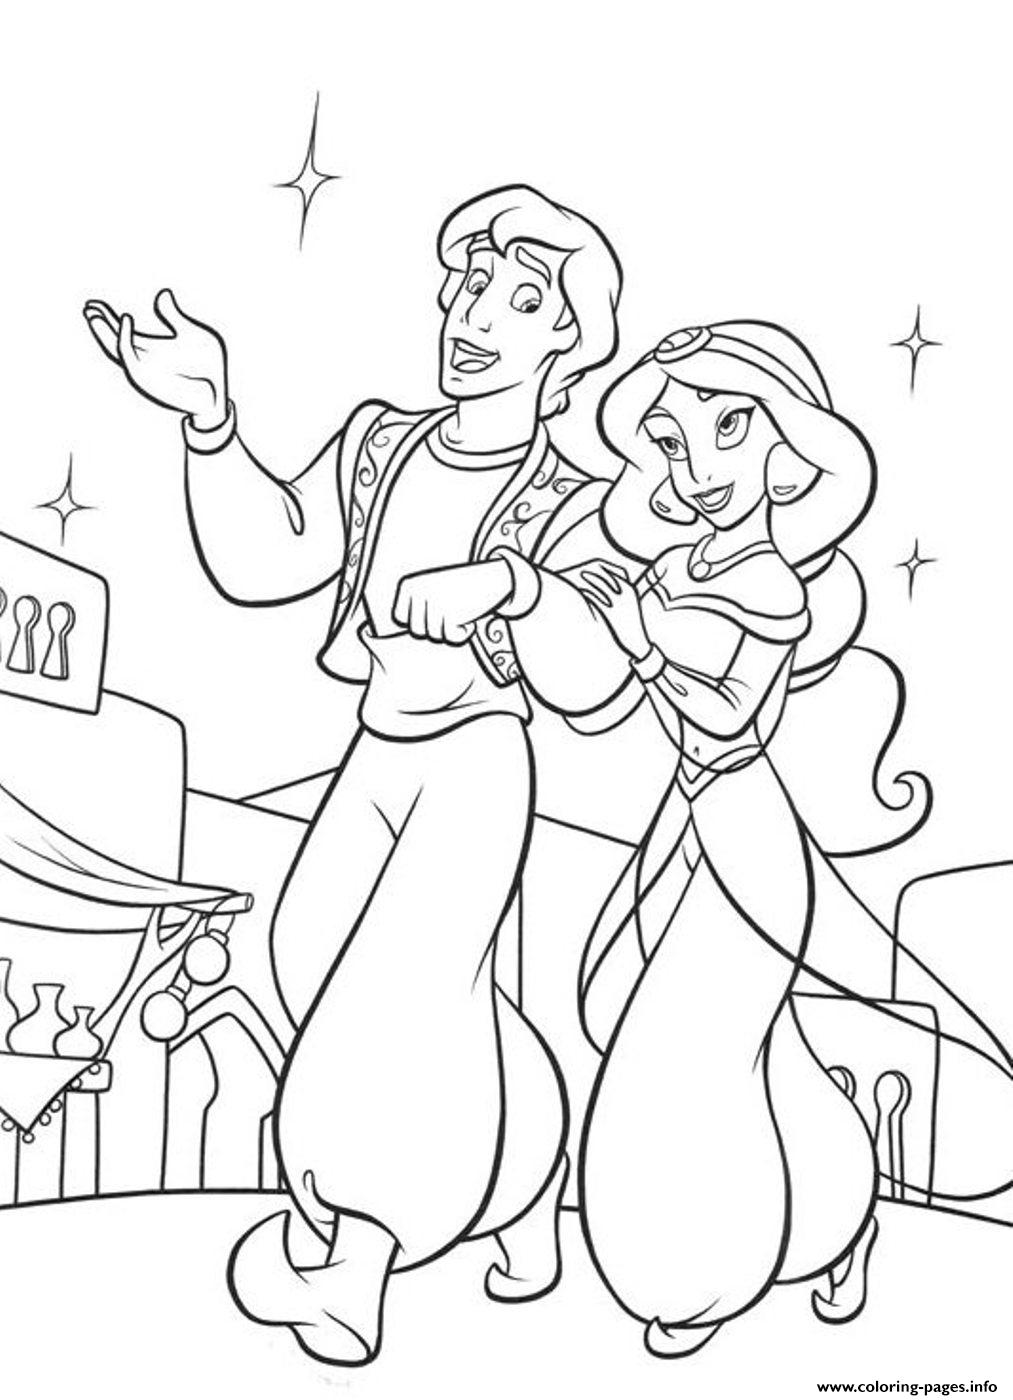 aladdin coloring page aladdin coloring pages disney coloring book coloring aladdin page